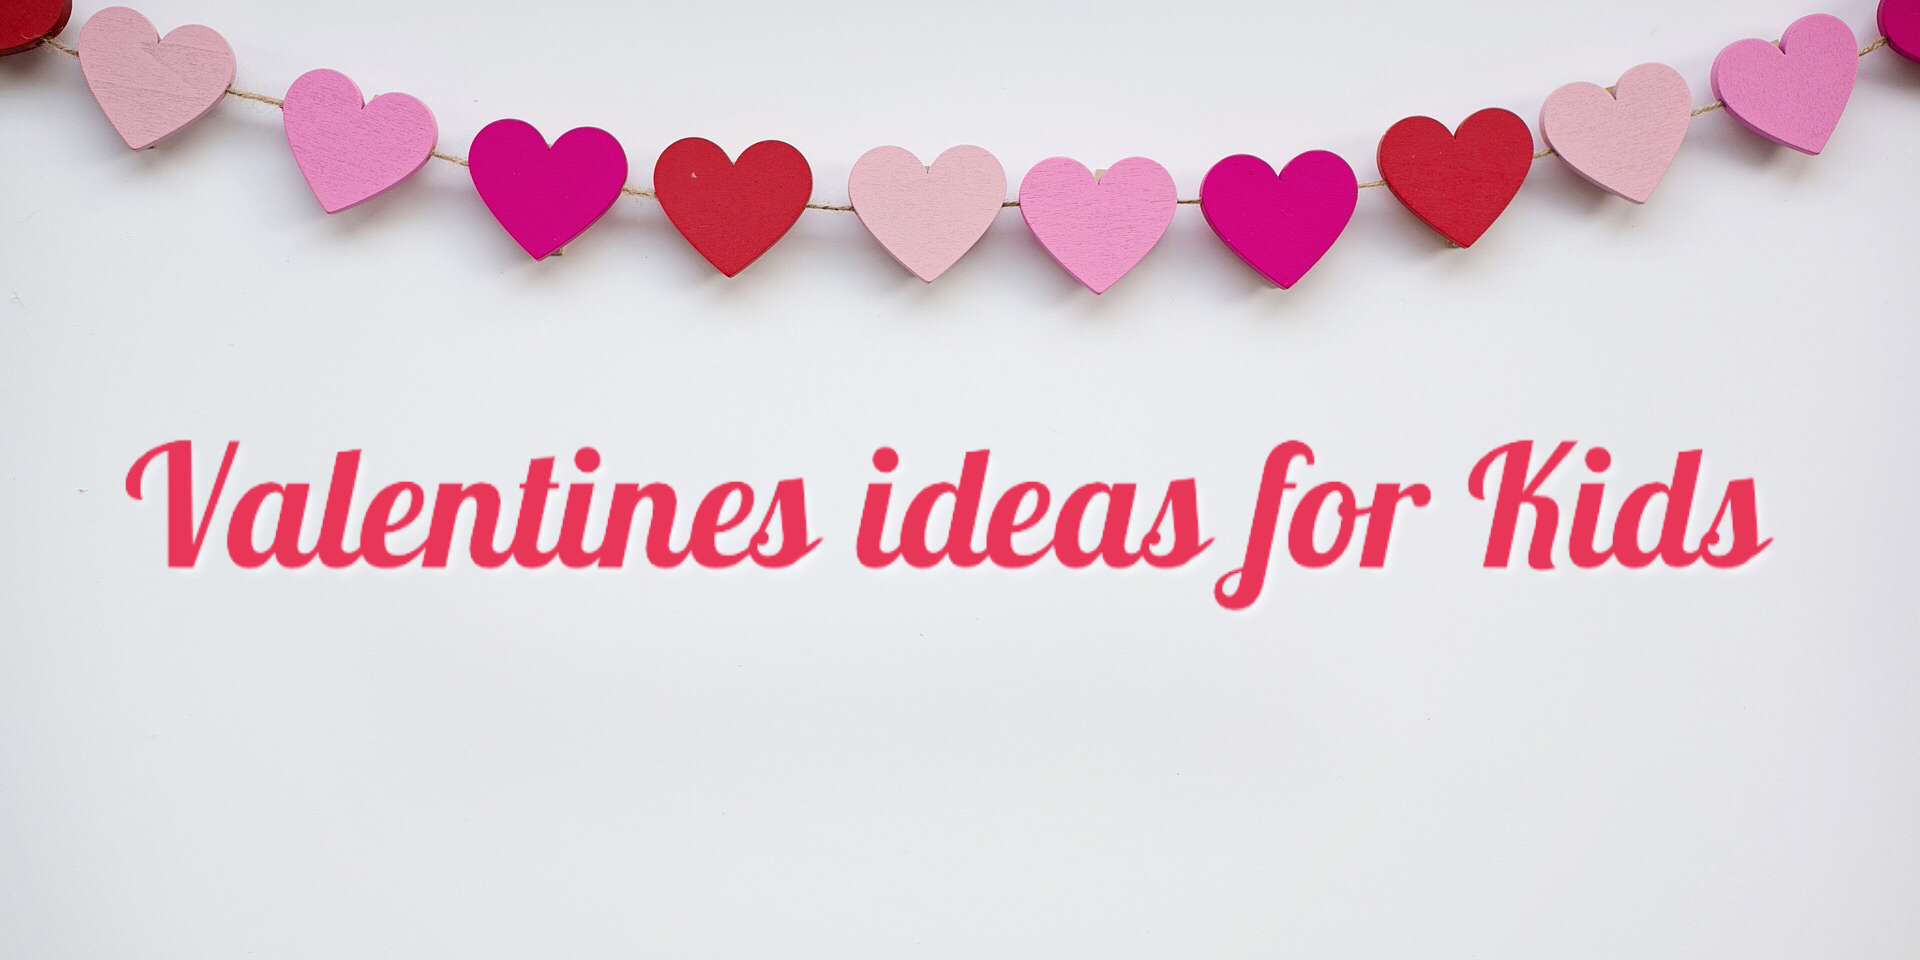 Valentines ideas for kids banner with hearts